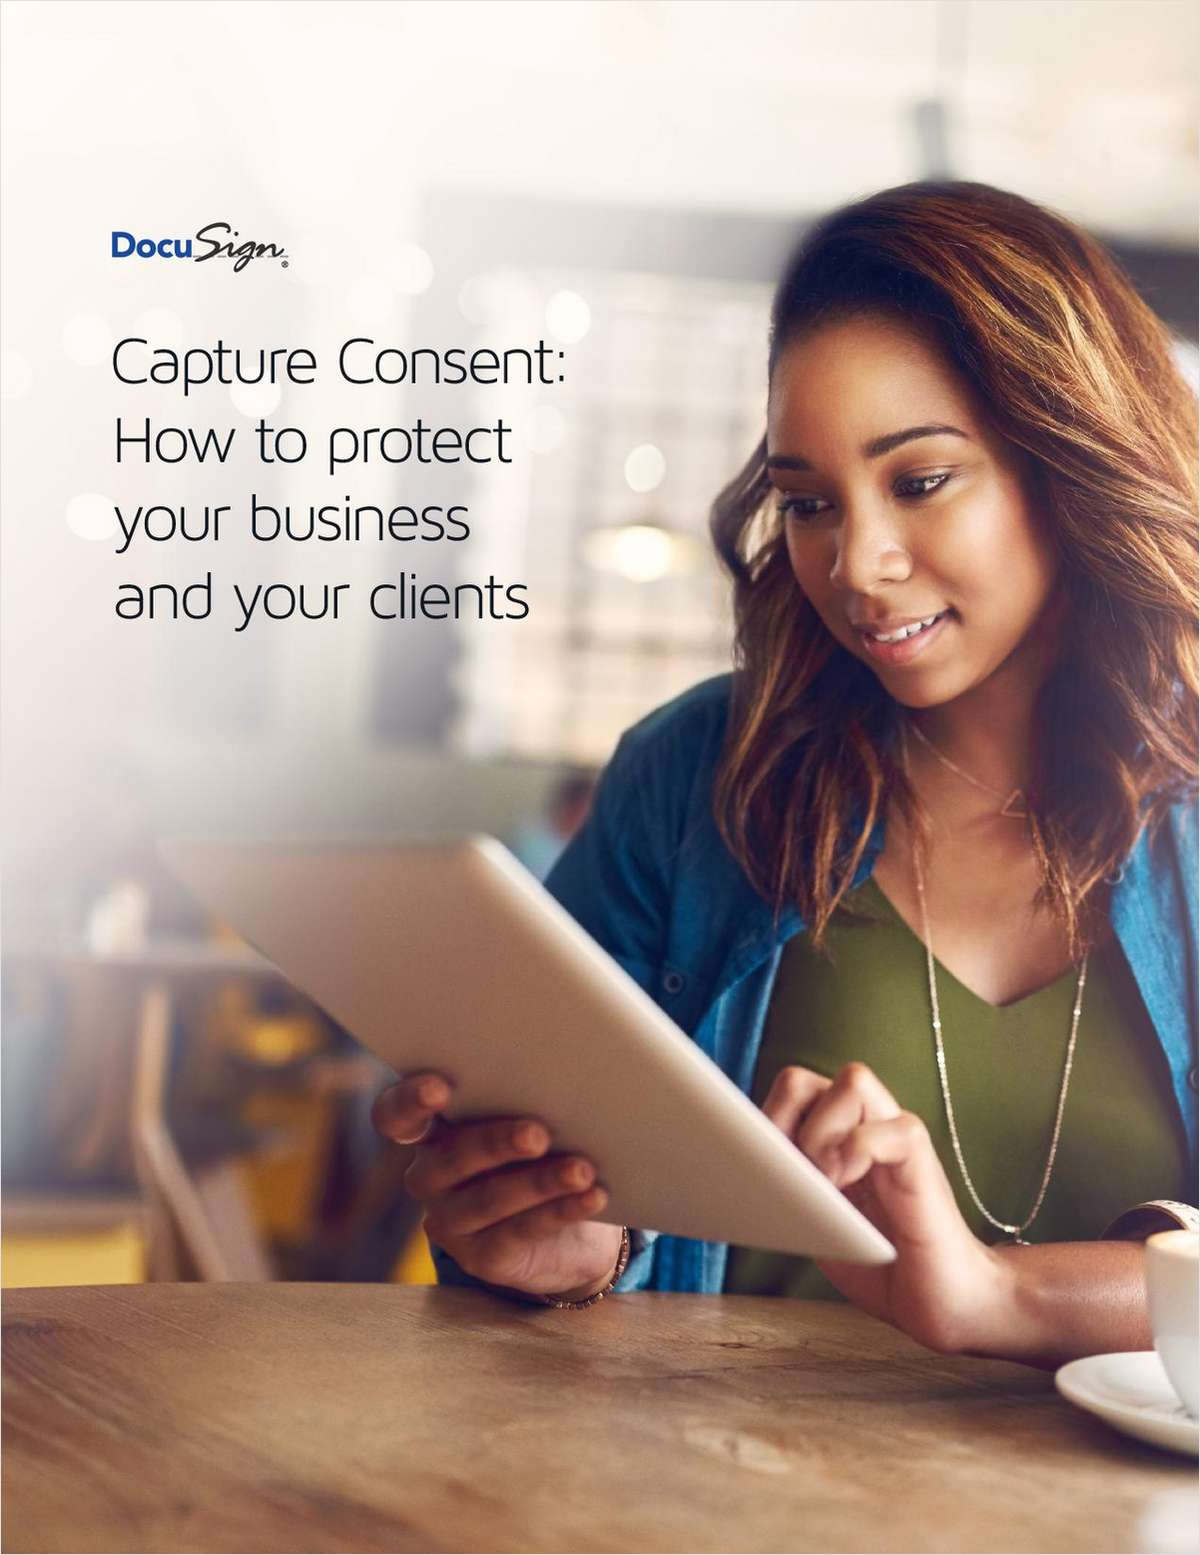 Capture Consent: How to Protect Your Business and Your Clients